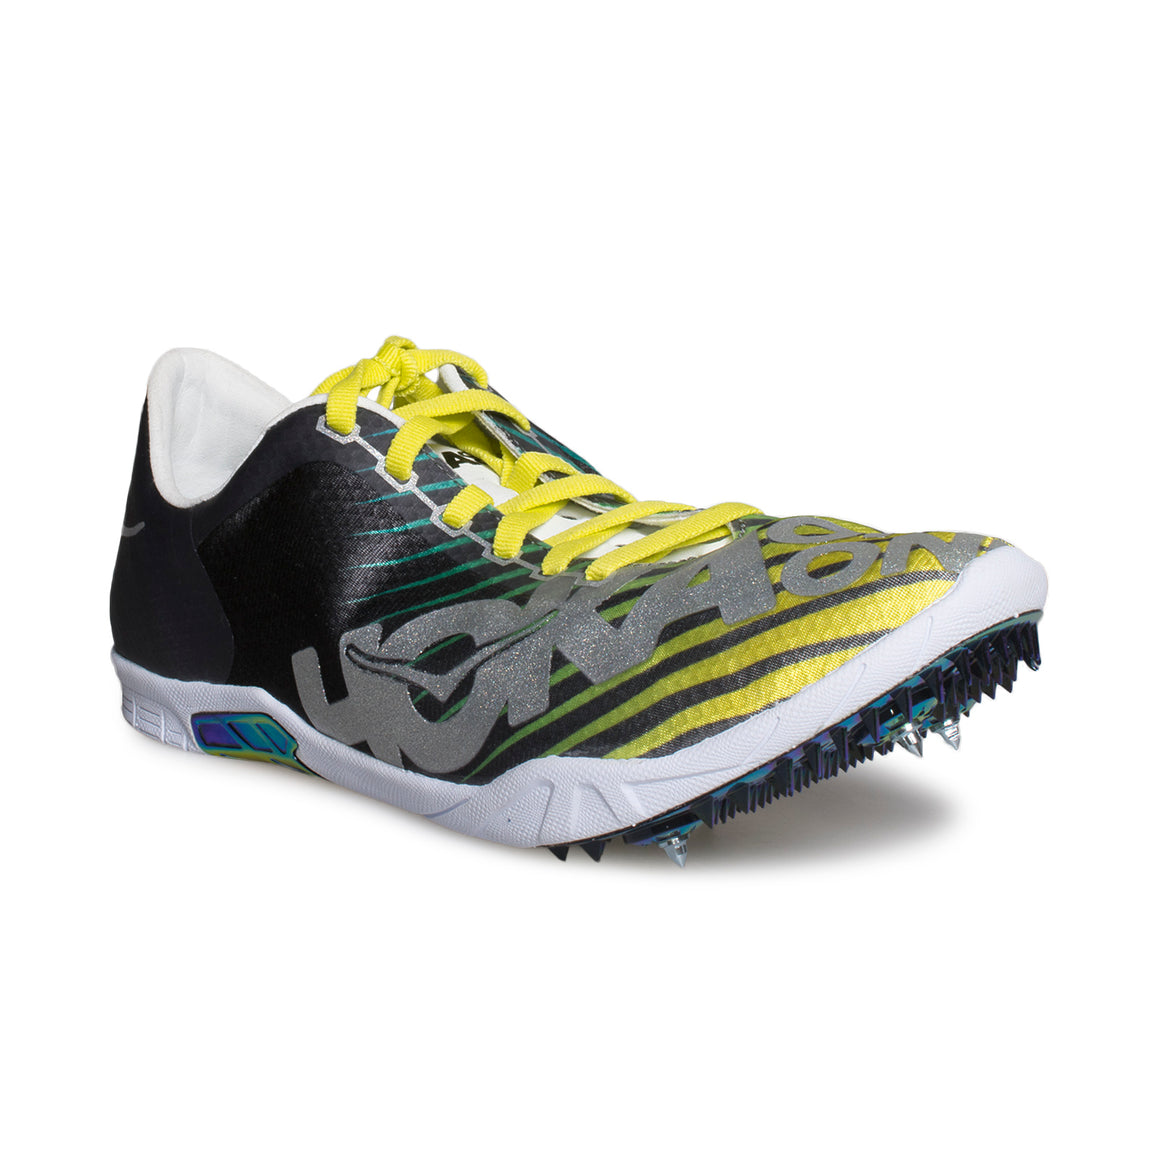 HOKA Speed Evo R Rio Shoes - Men's